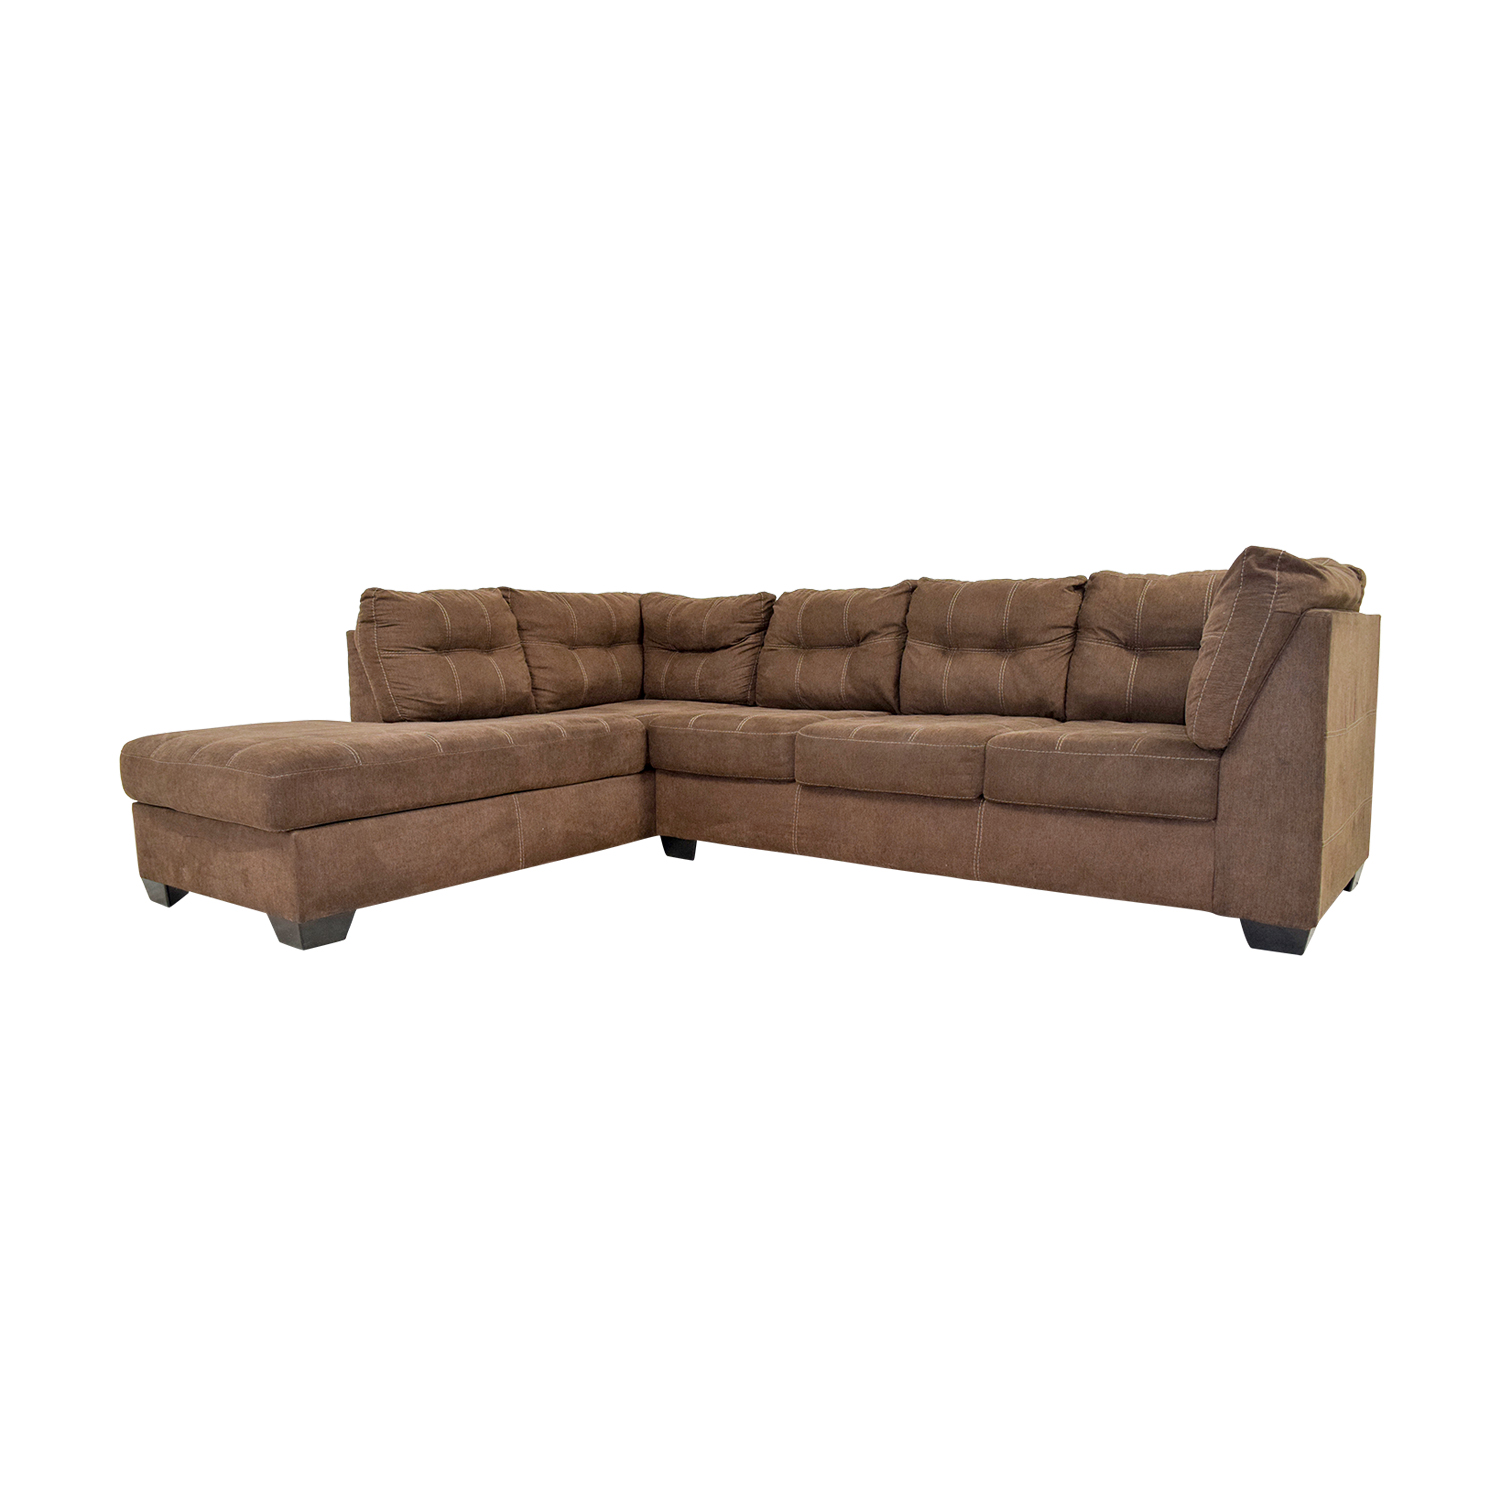 Brown L-Shaped Chaise Sectional Sofa BROWN